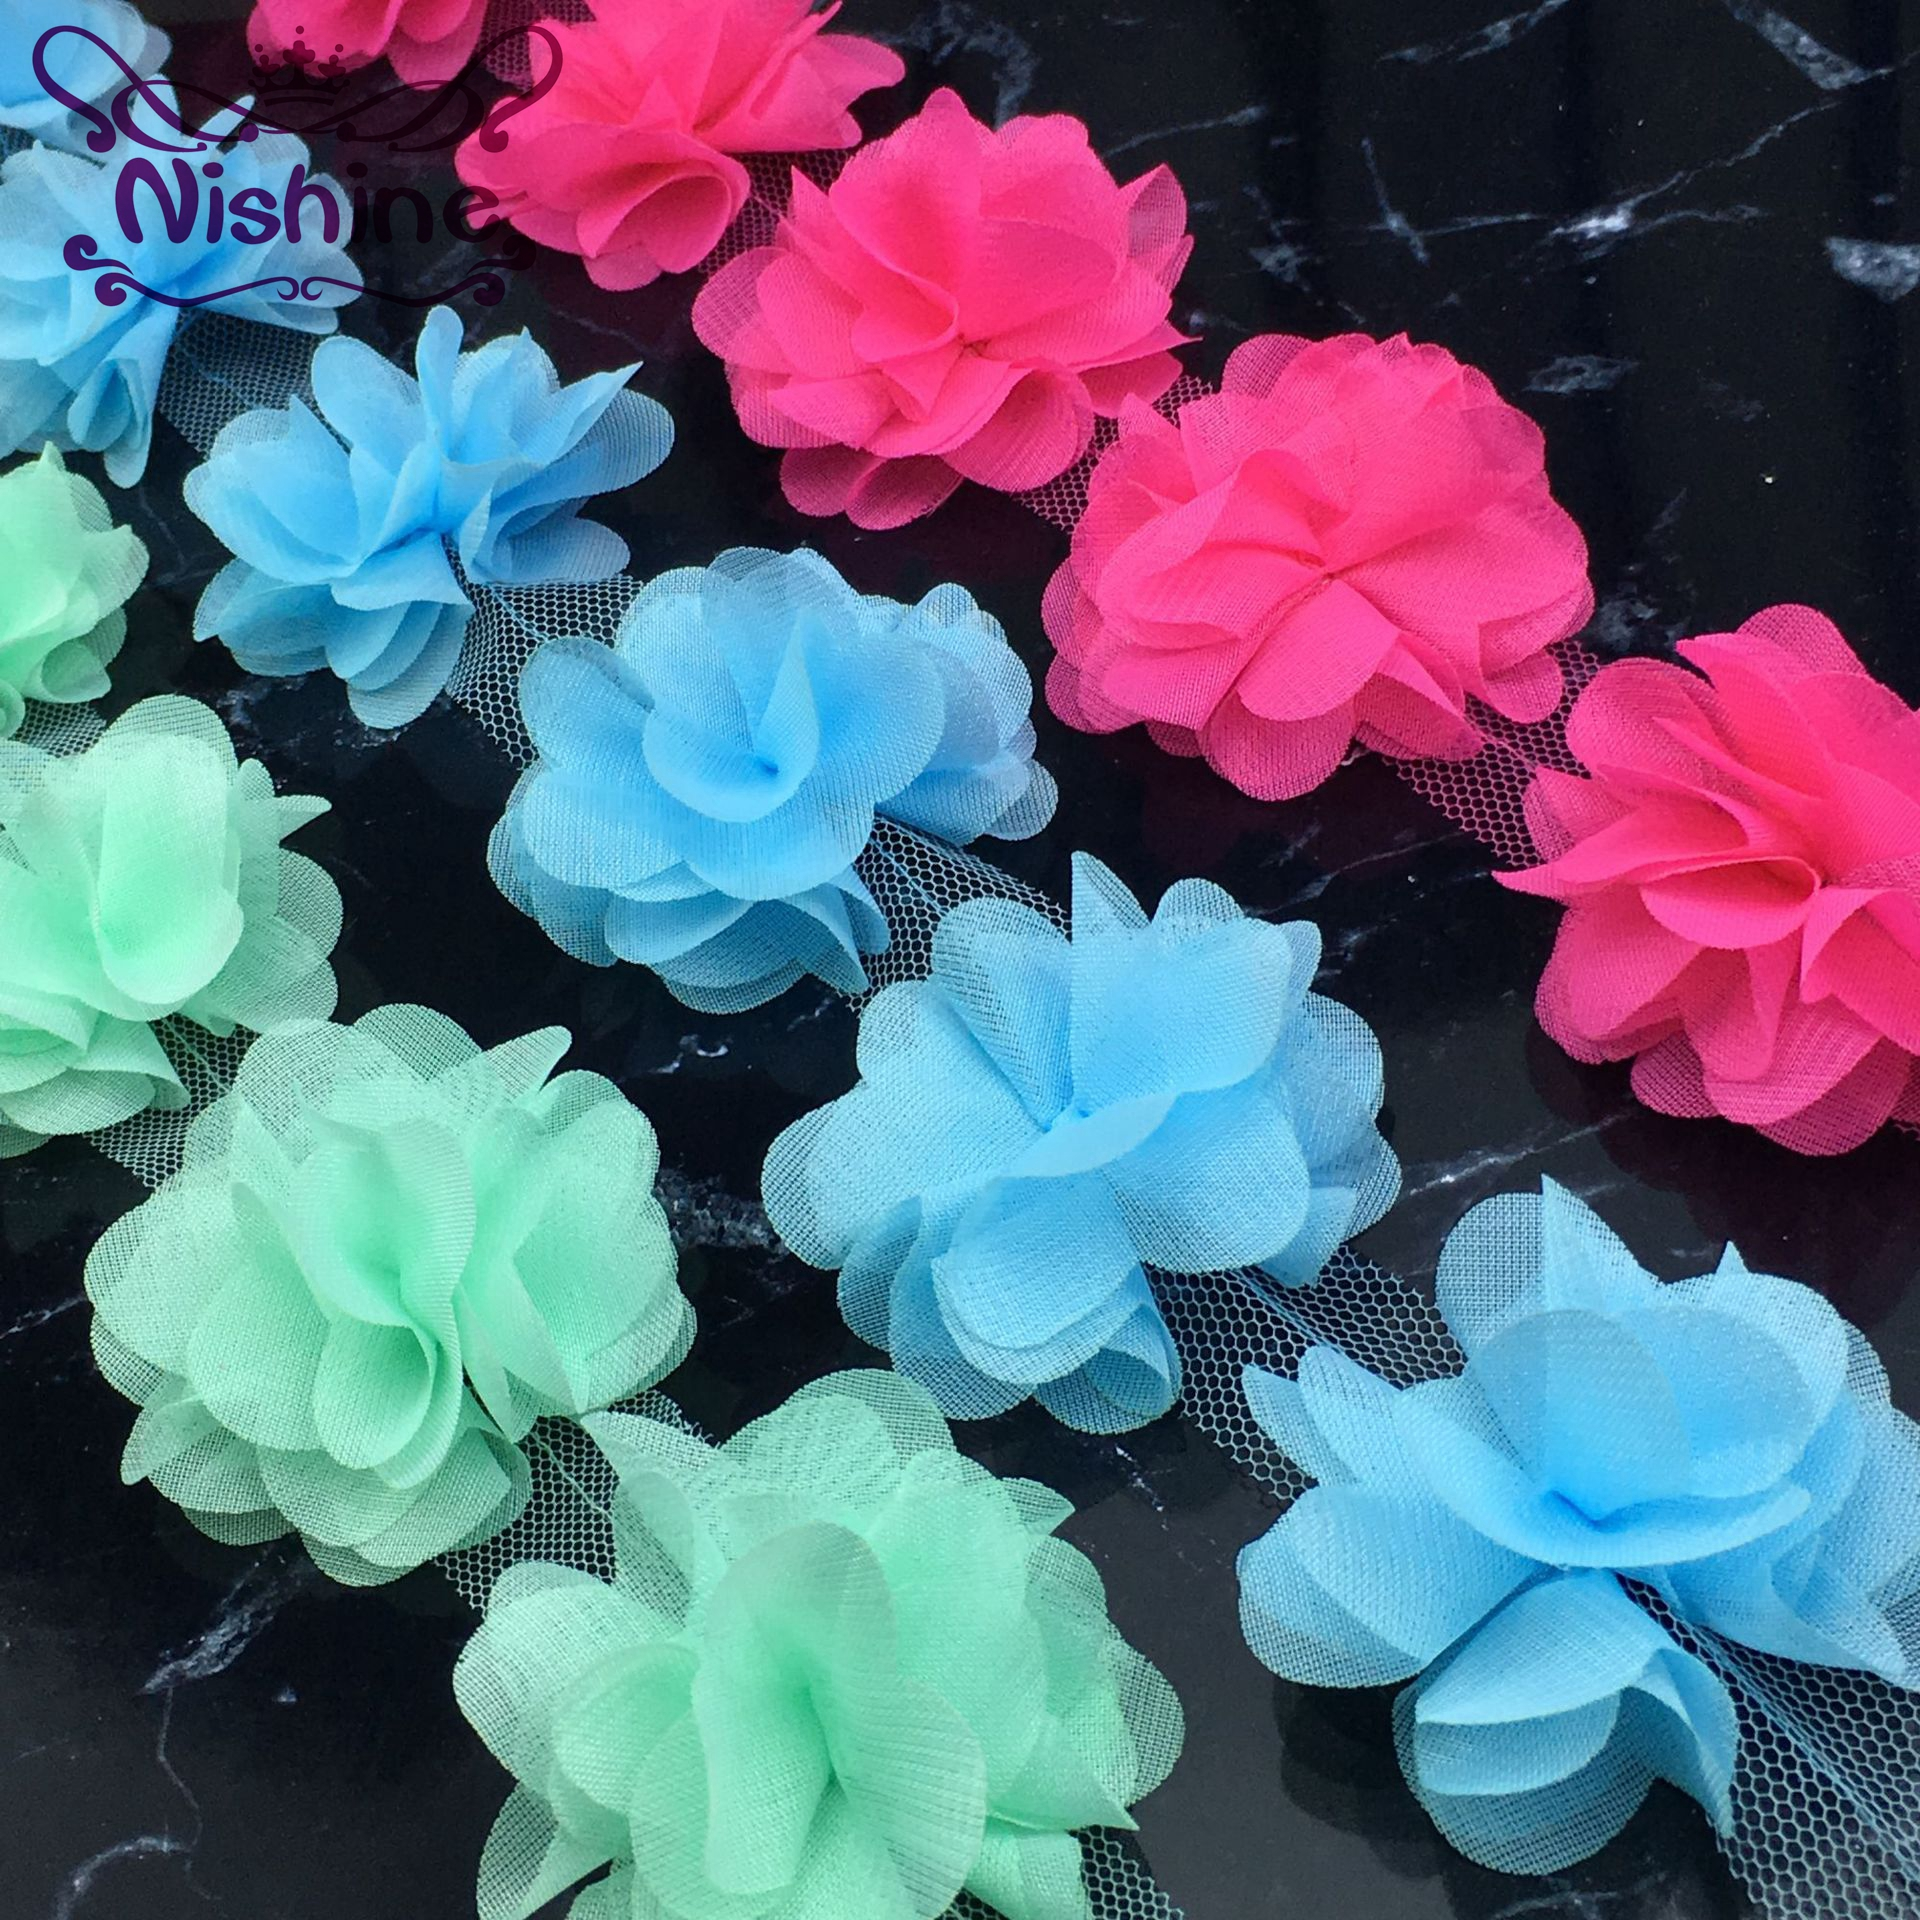 NISHINE 1 Yard 18 Colors Chiffon 3D Lace Flowers 6 Petals Flower For Handmade Children Headband Diy Clothing Hair Accessories